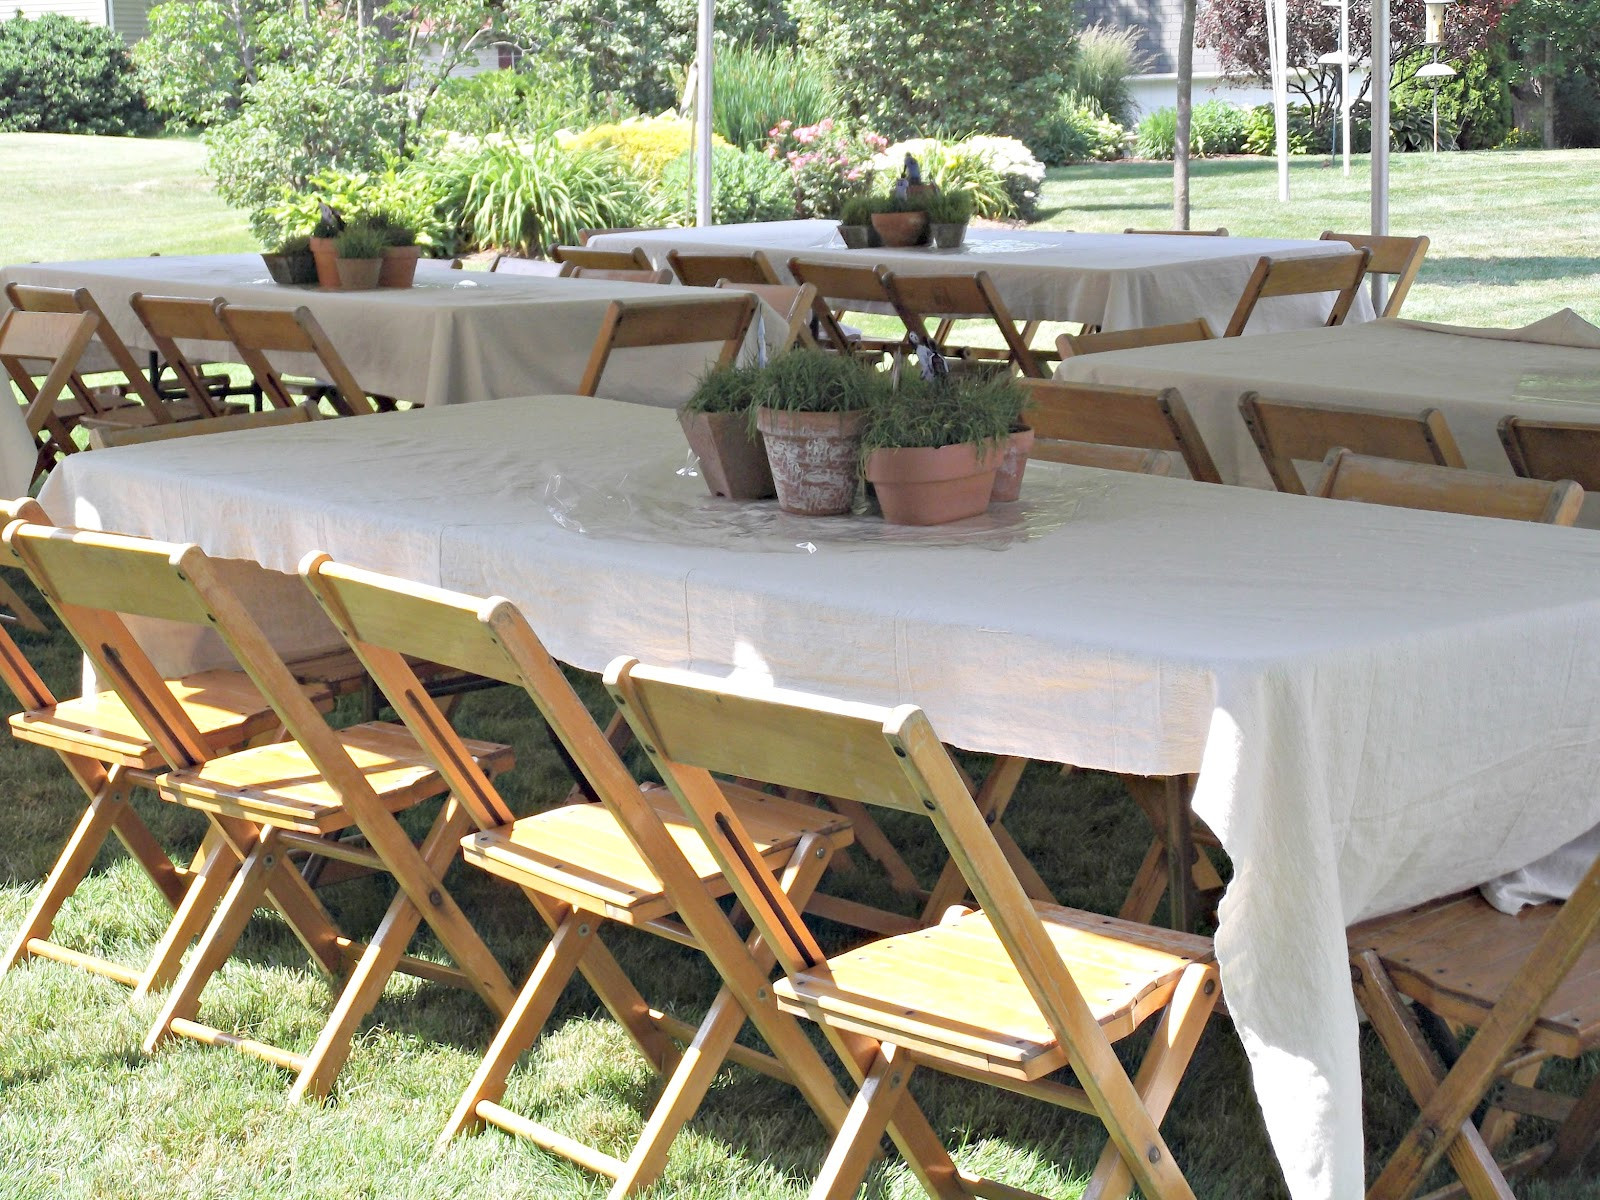 Graduation Party Ideas For Guys  What s Old Is New Graduation Party Ideas For Guys